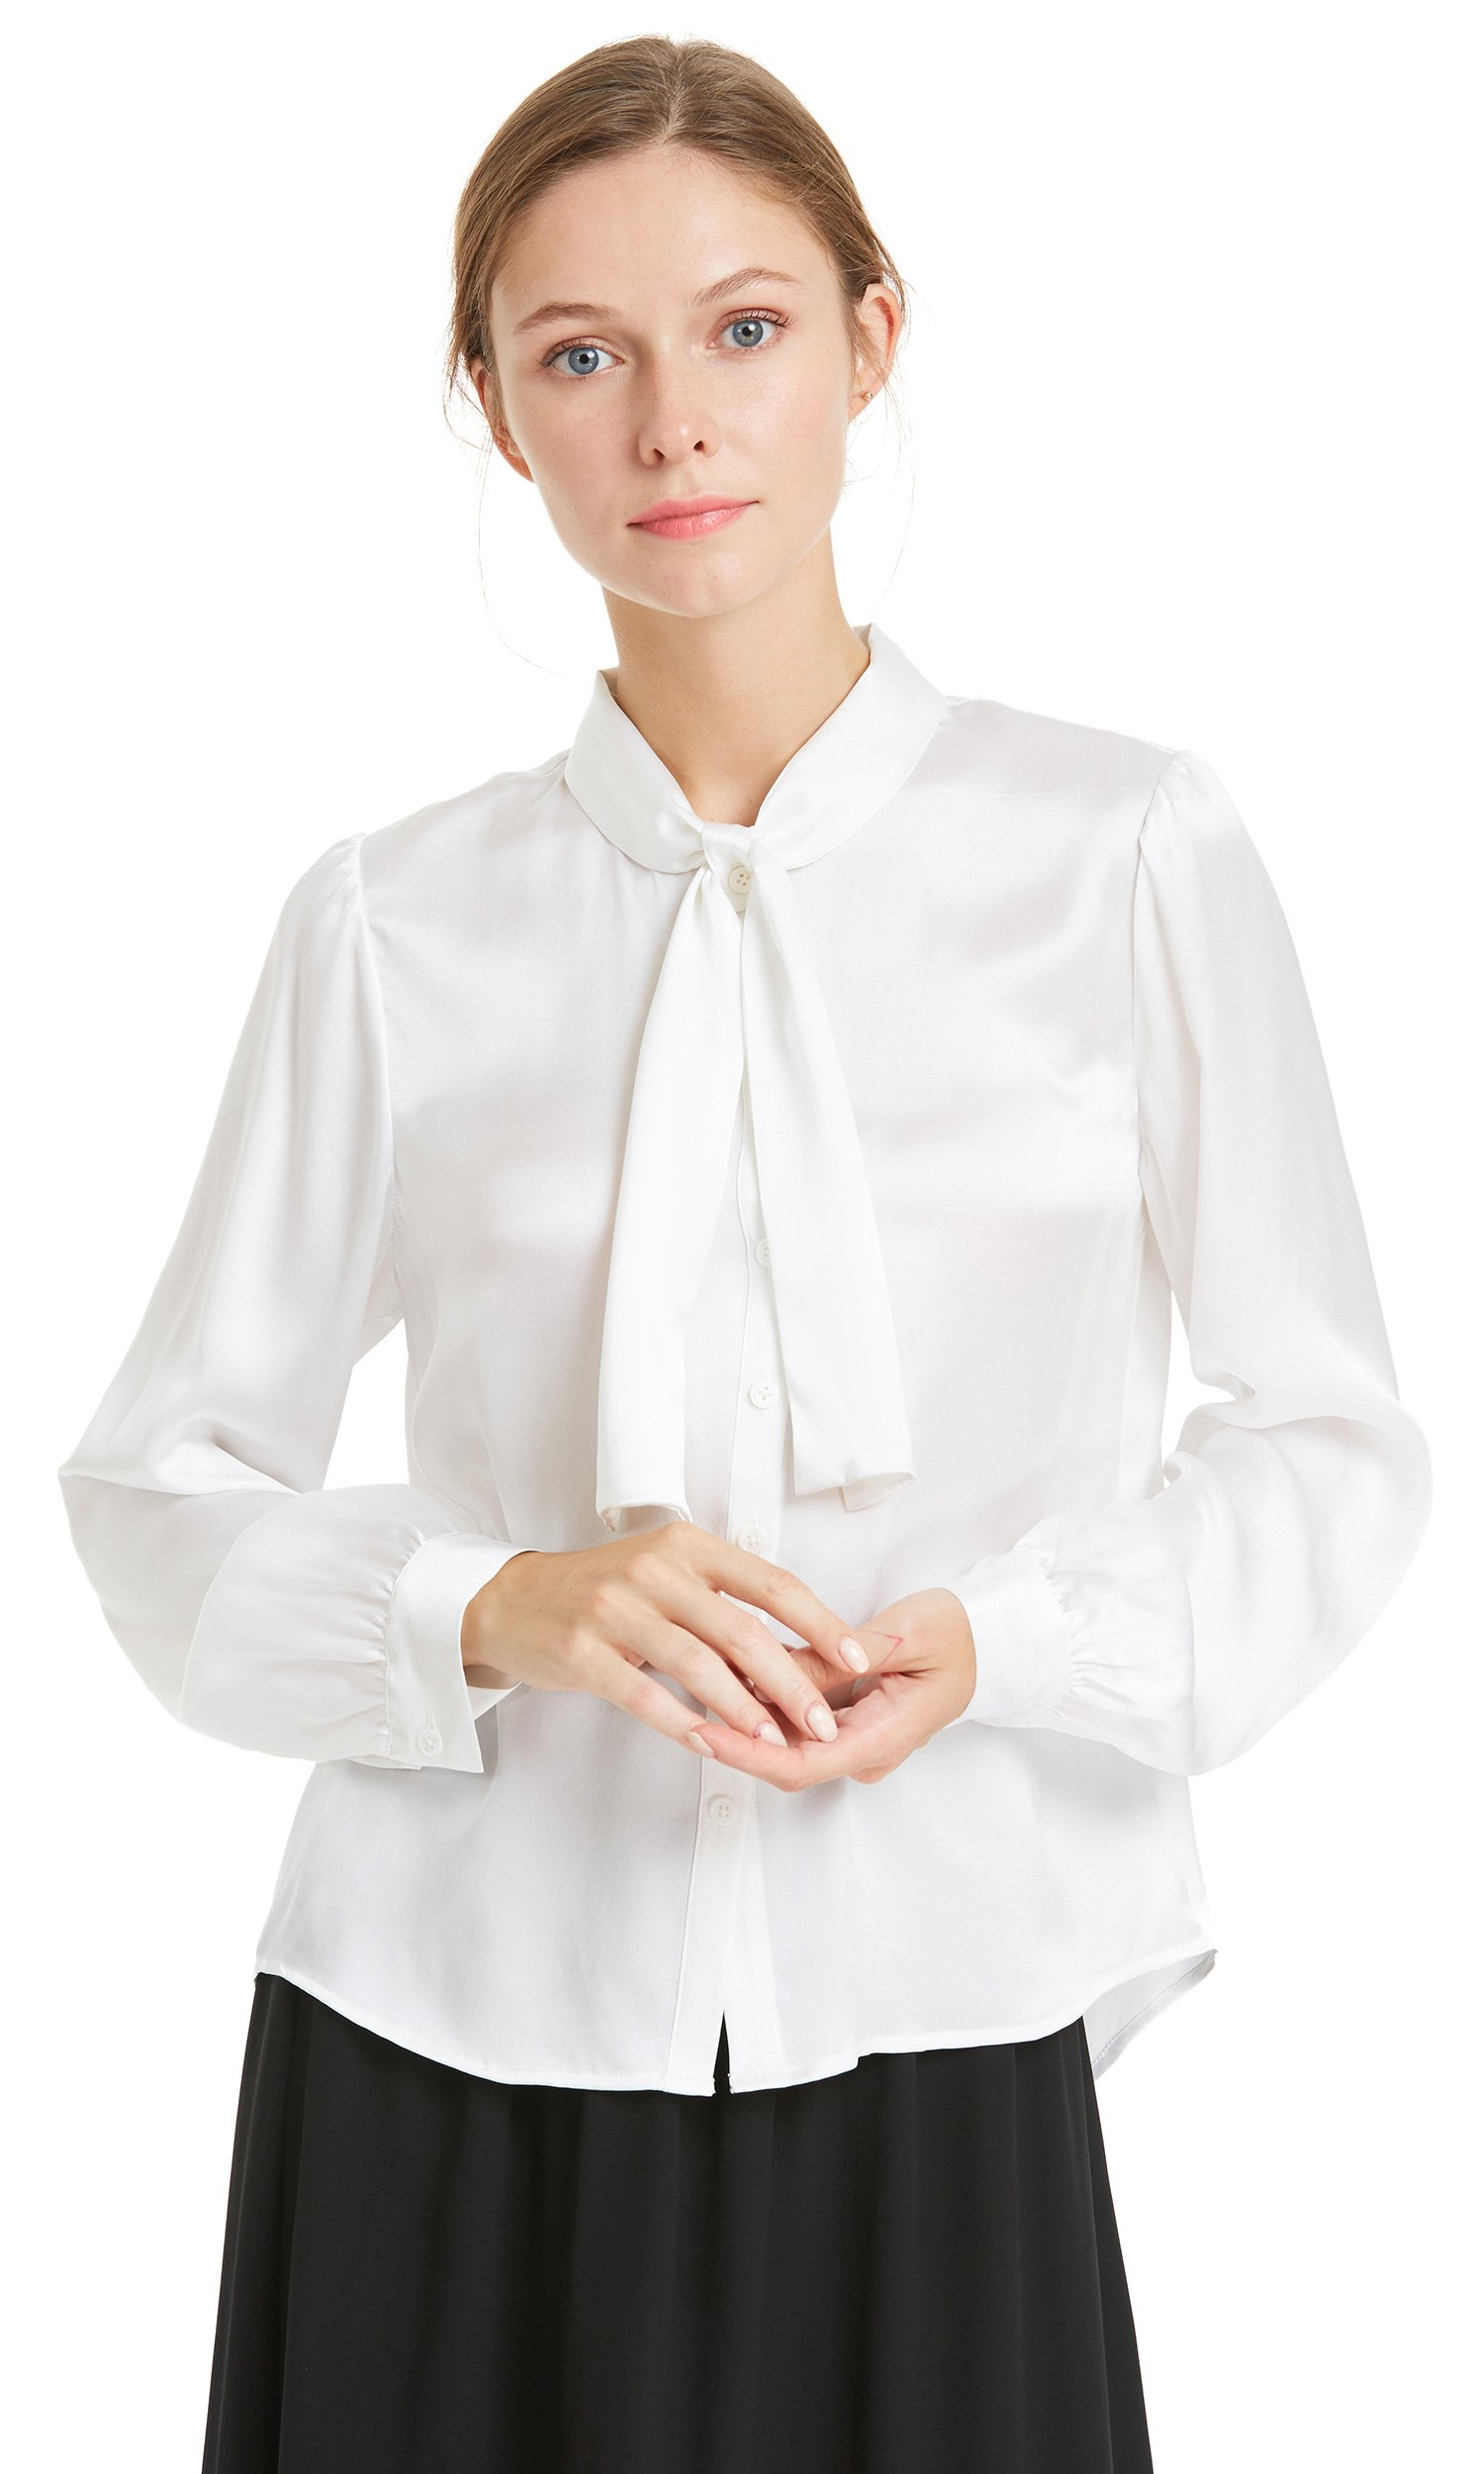 LILYSILK Silk Shirt for Women 22MM Bowknot Tie Collar Long Sleeve Mulberry Ladies Tops White M/8-10 by LilySilk